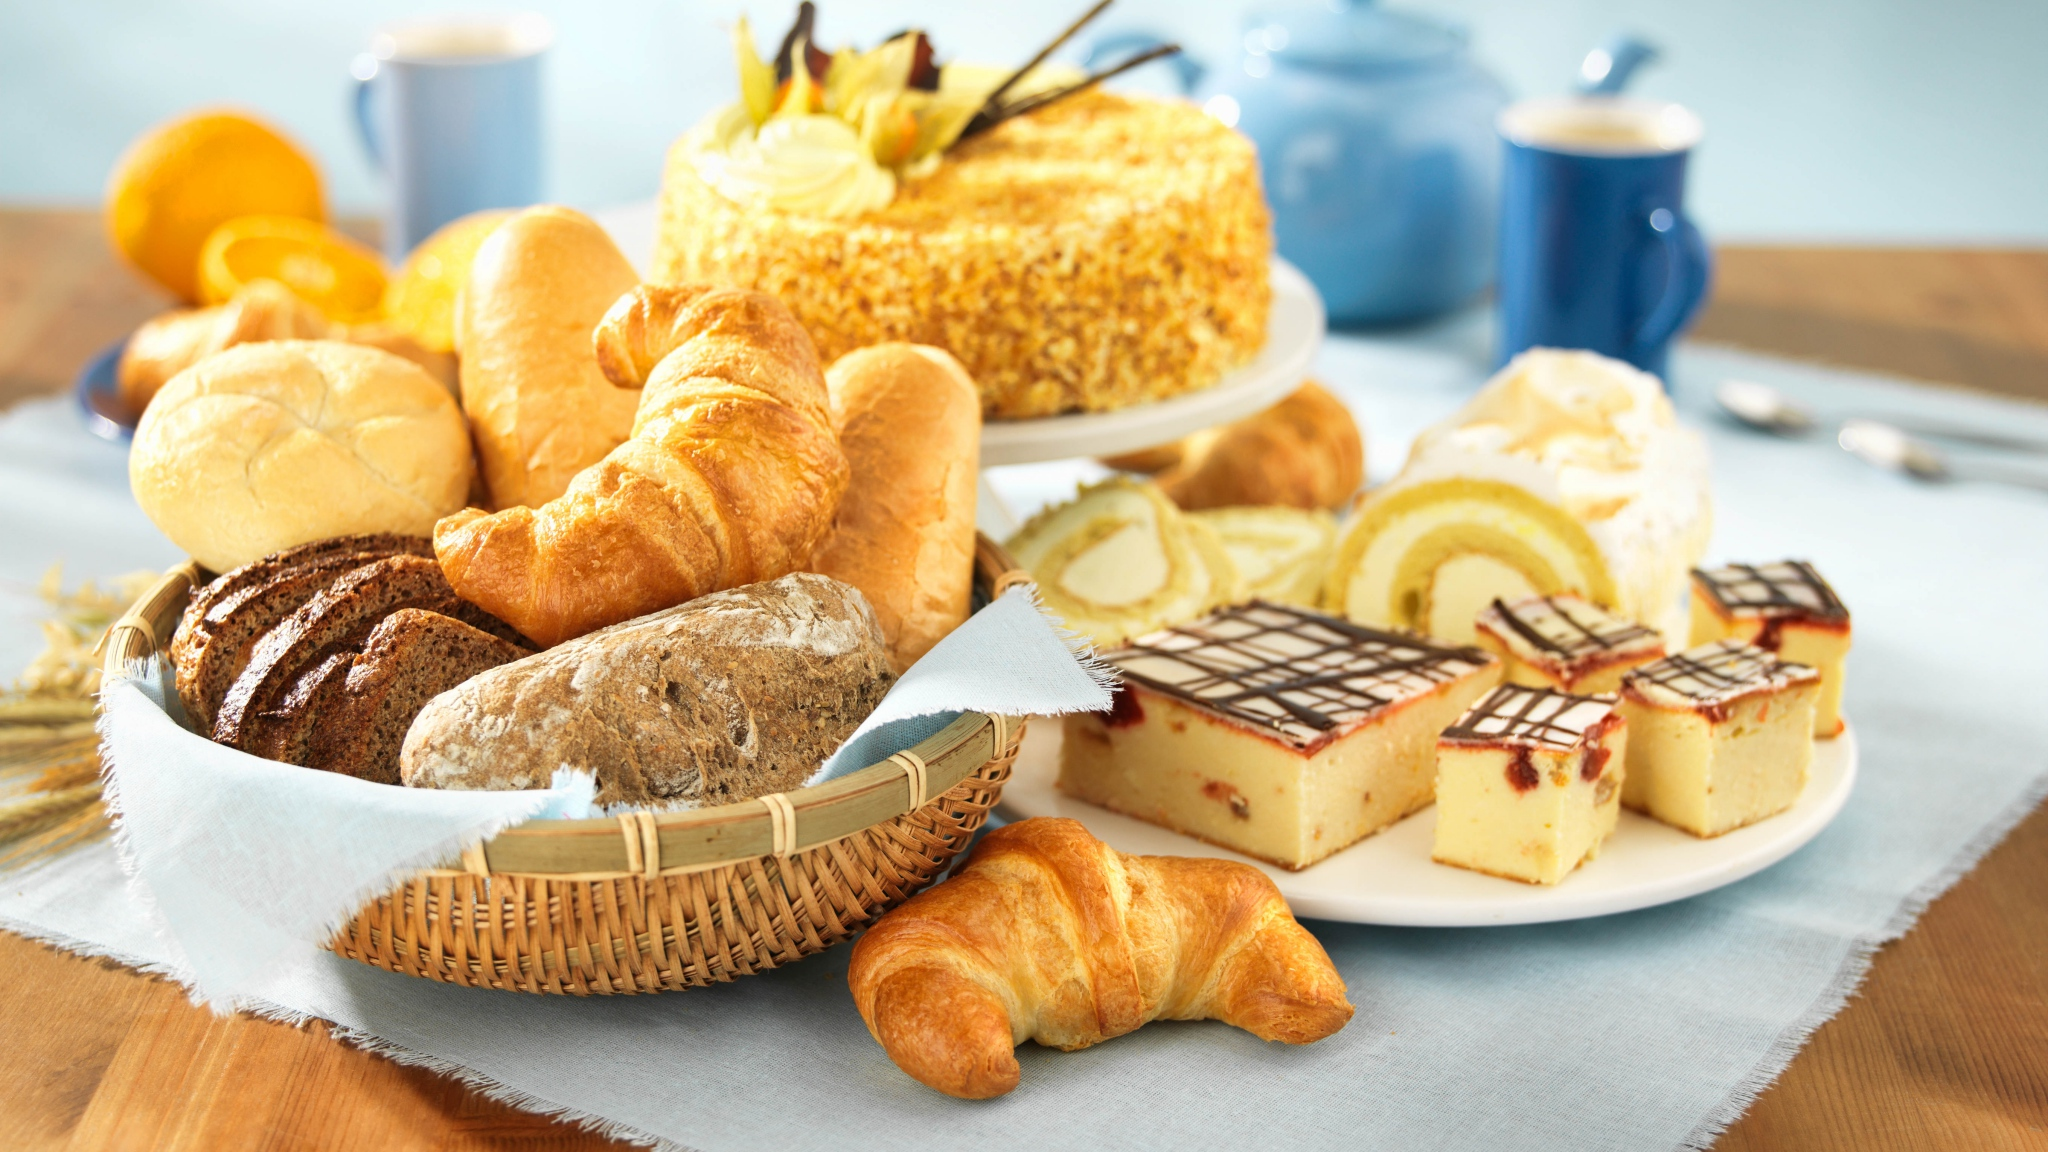 Pastries Background